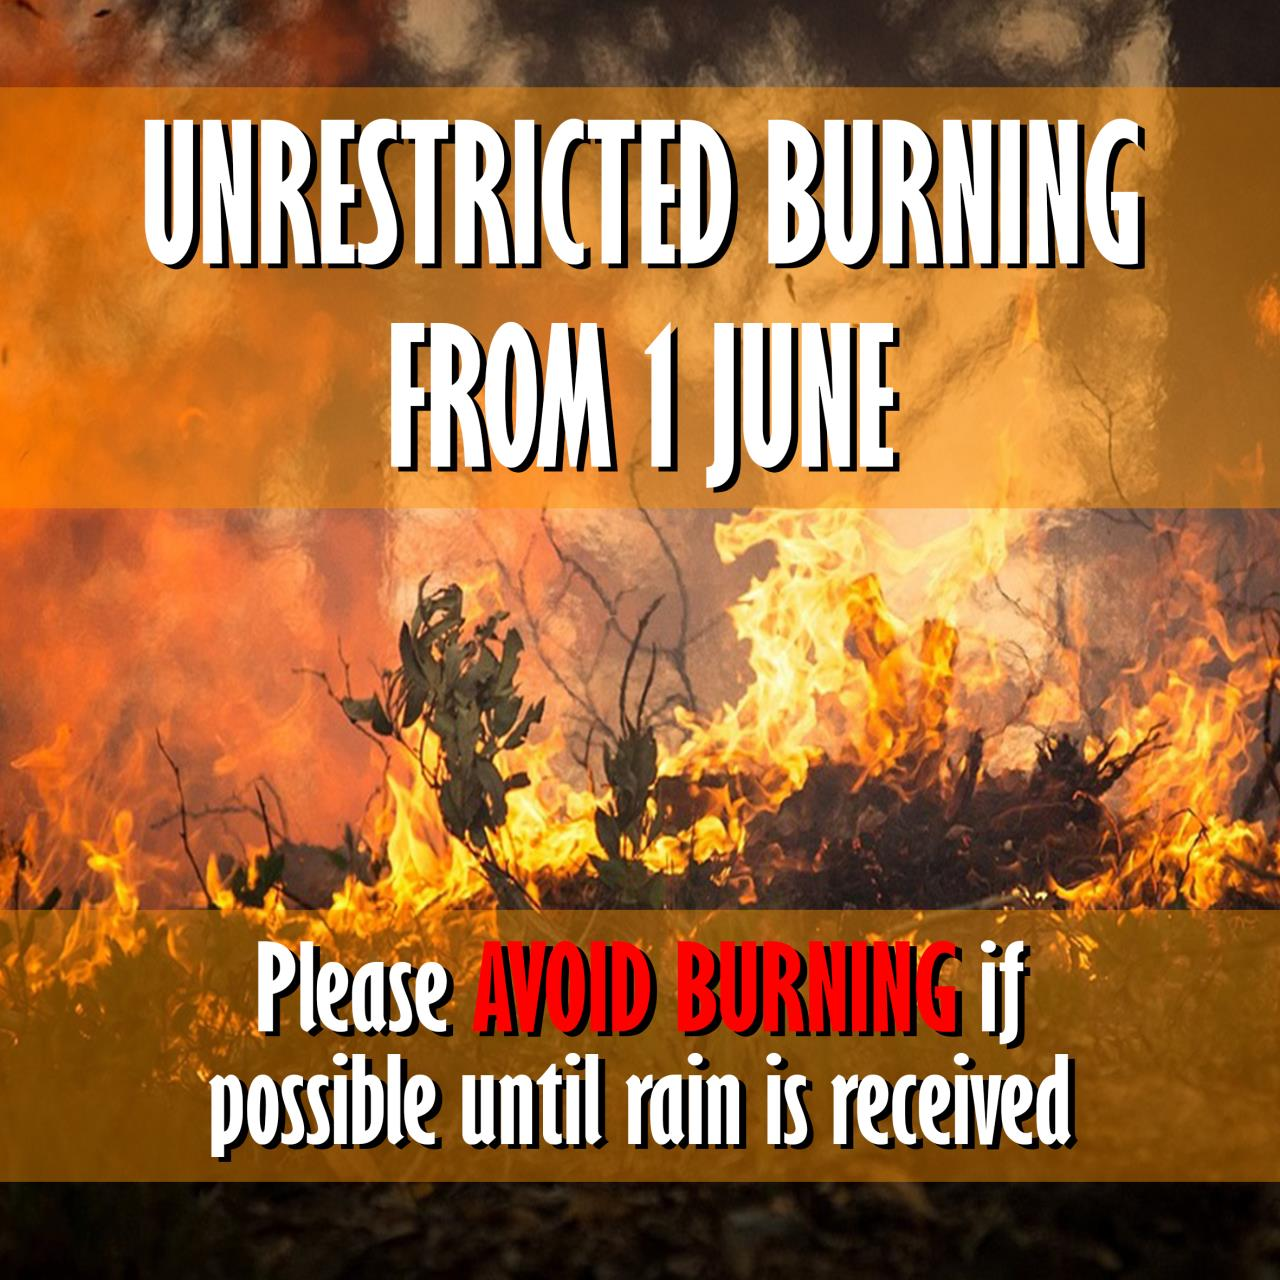 Unrestricted Burning from 1 June